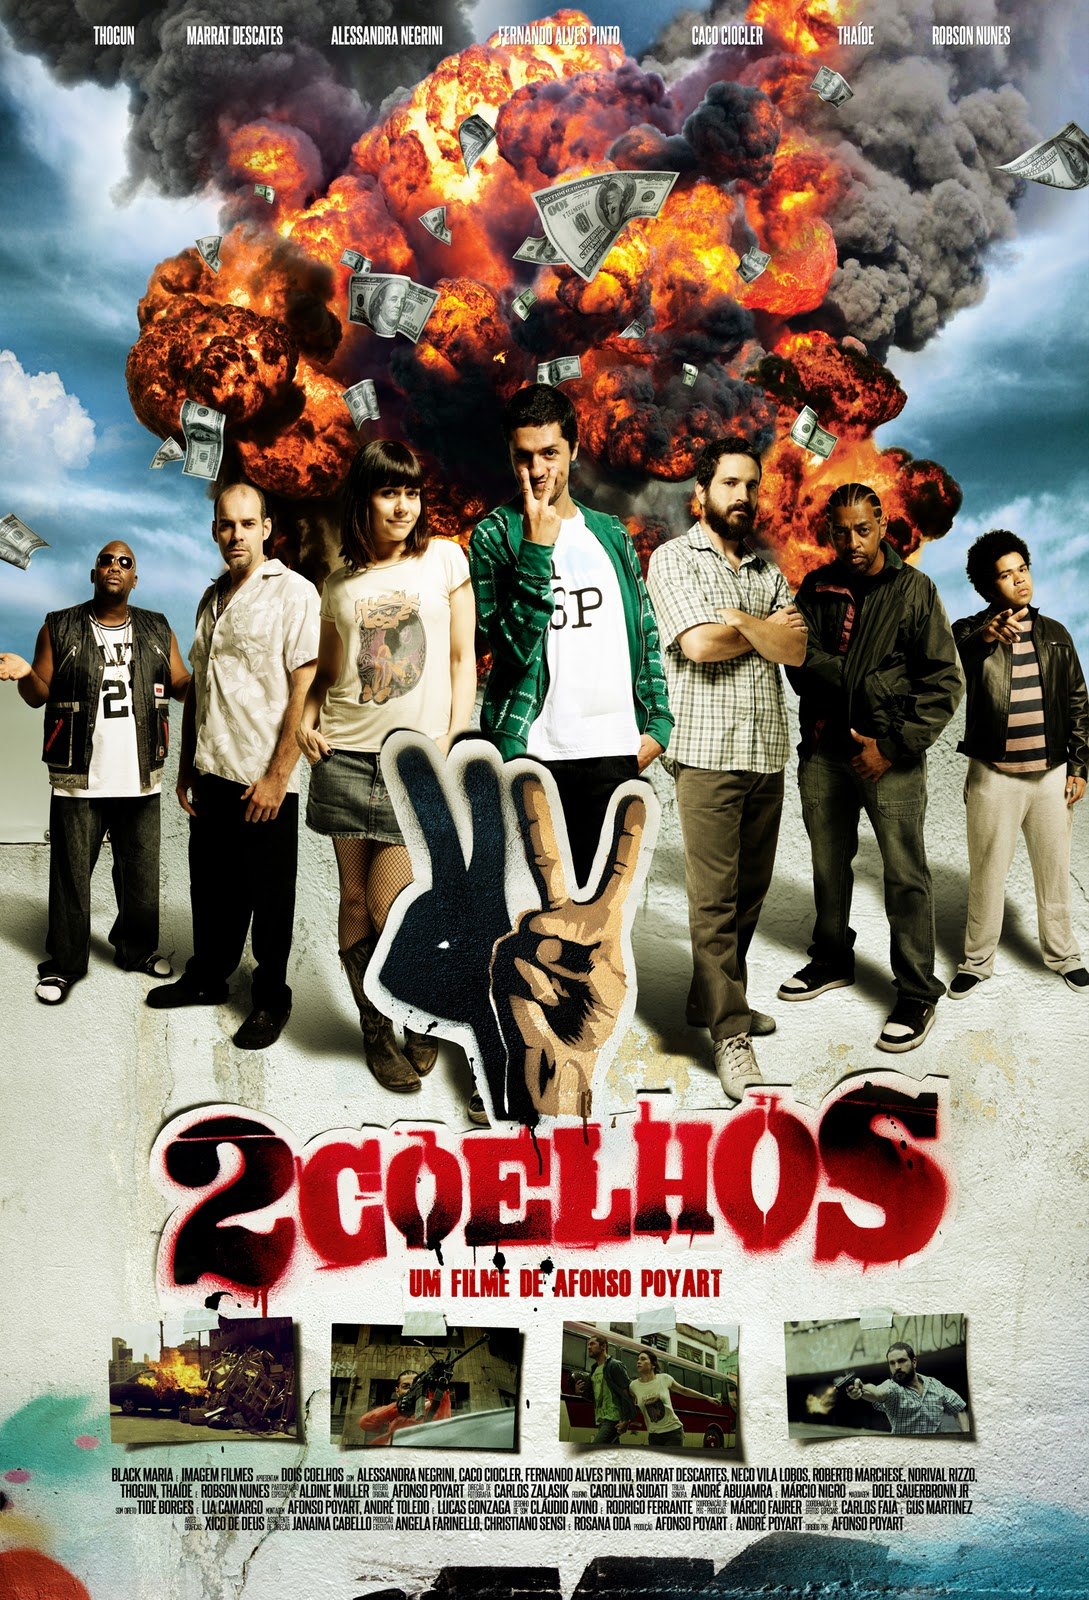 Download   2 Coelhos – DvdRip   Nacional